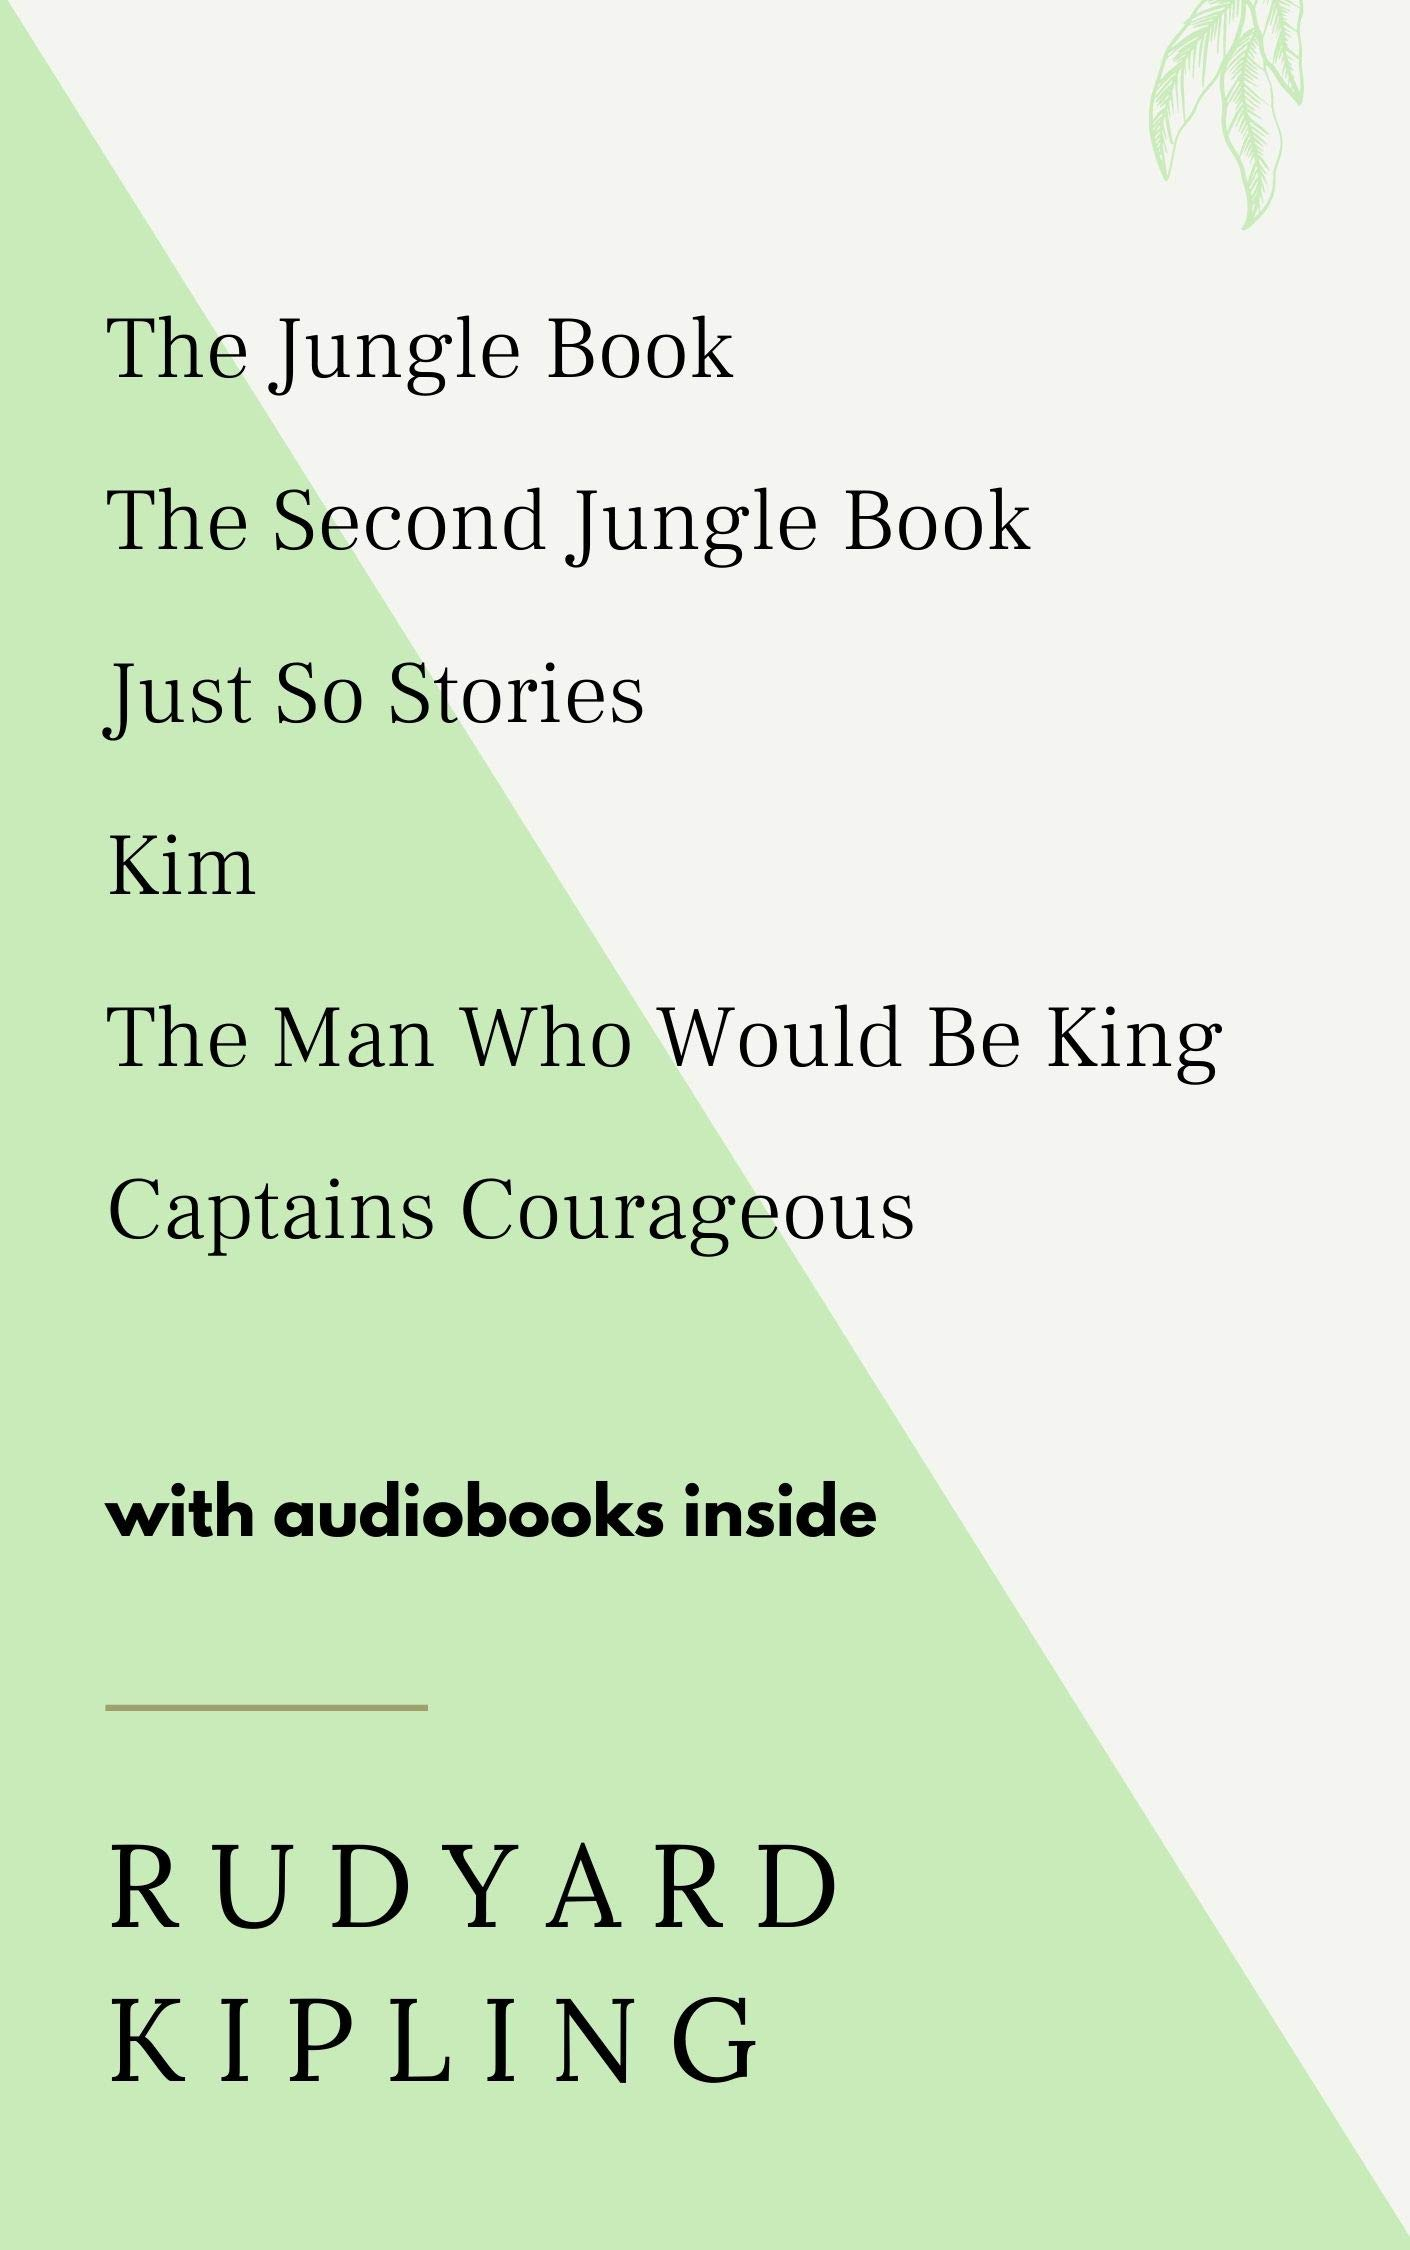 The Jungle Book, The Second Jungle Book, Just So Stories, Kim, The Man Who Would Be King, Captains Courageous - WITH AUDIOBOOKS